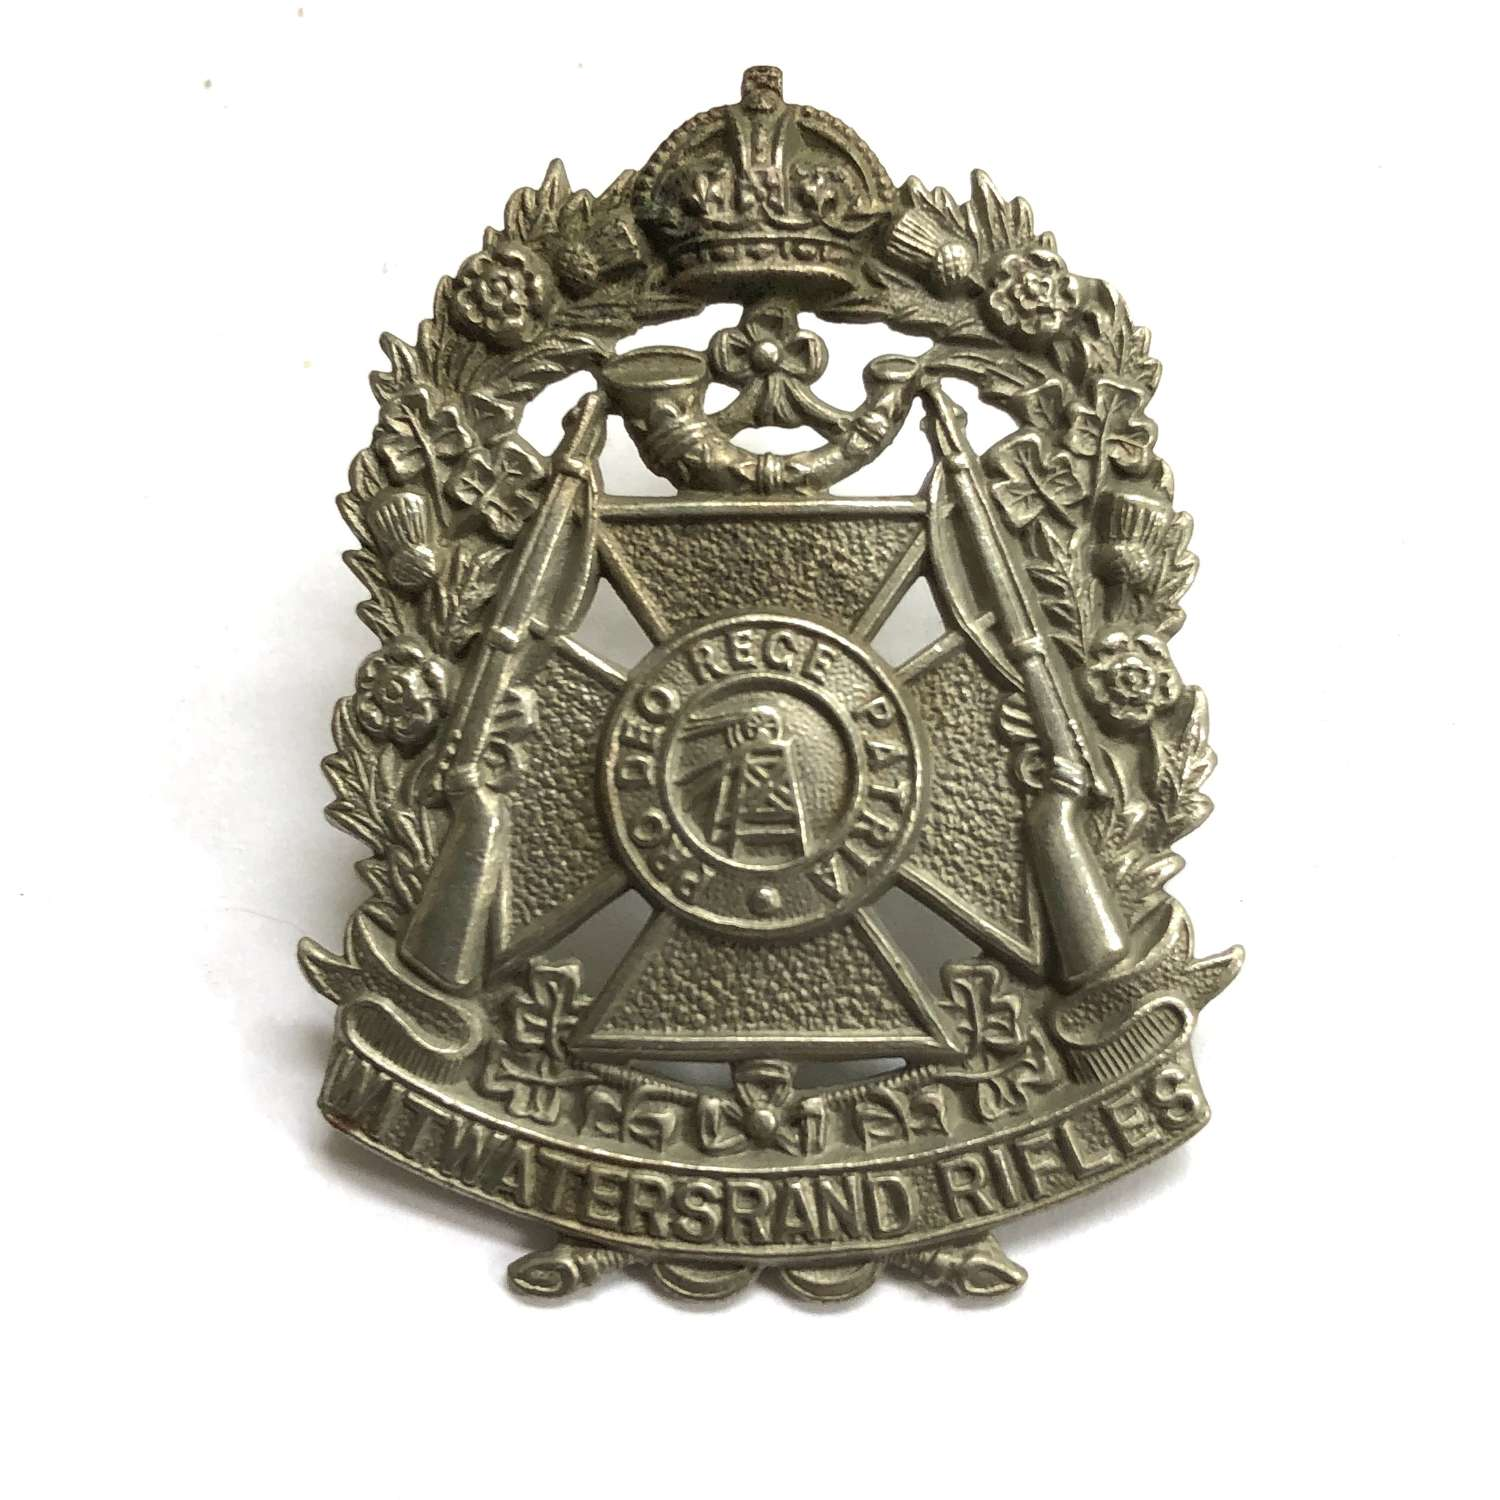 South Africa. Witwatersrand Rifles cap badge circa 1907-45